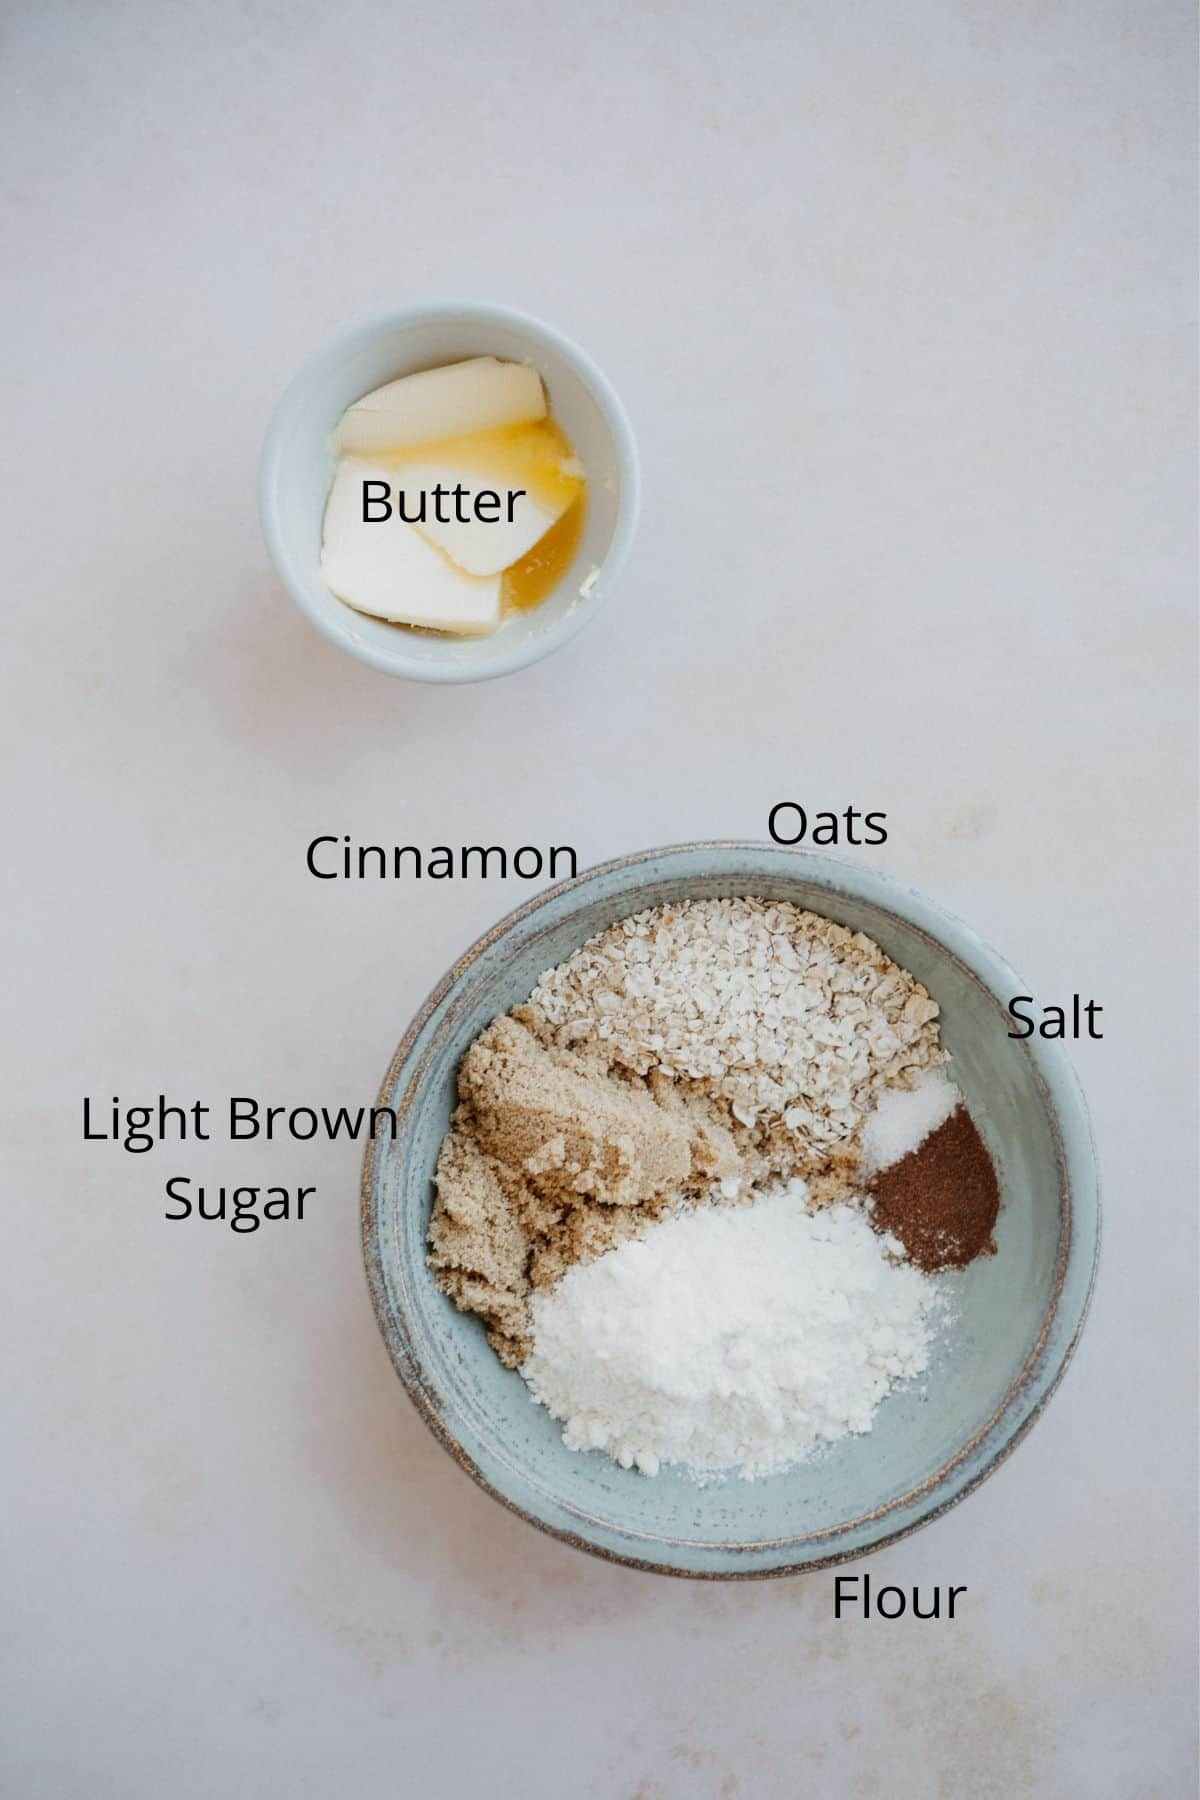 An overhead shot of the ingredients for a crumble topping